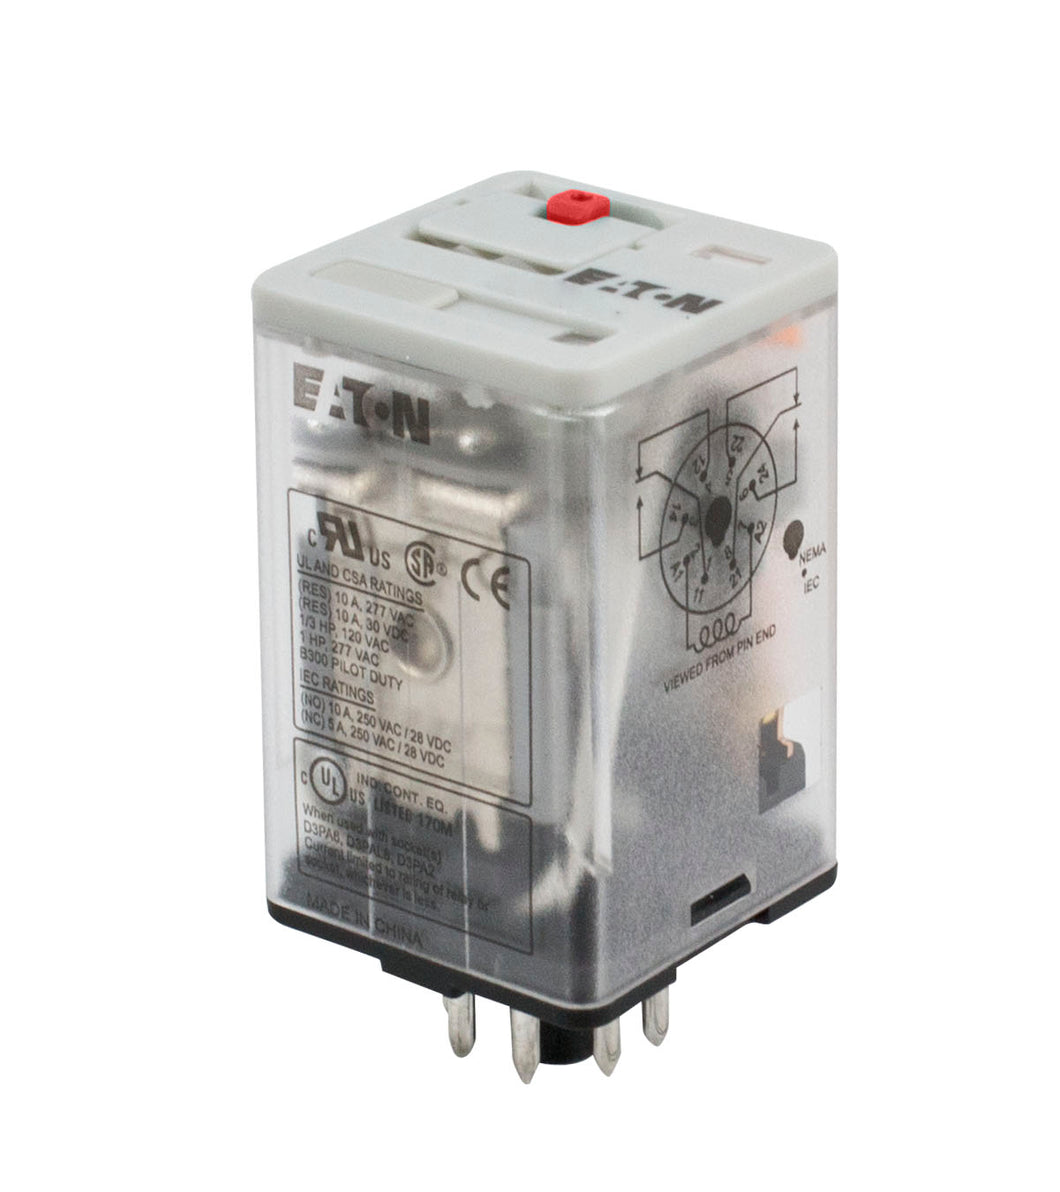 Eaton D2RF4A1 General Purpose Relay, 14 Blade, 4PDT, 110V DC Eaton D2RF4A1